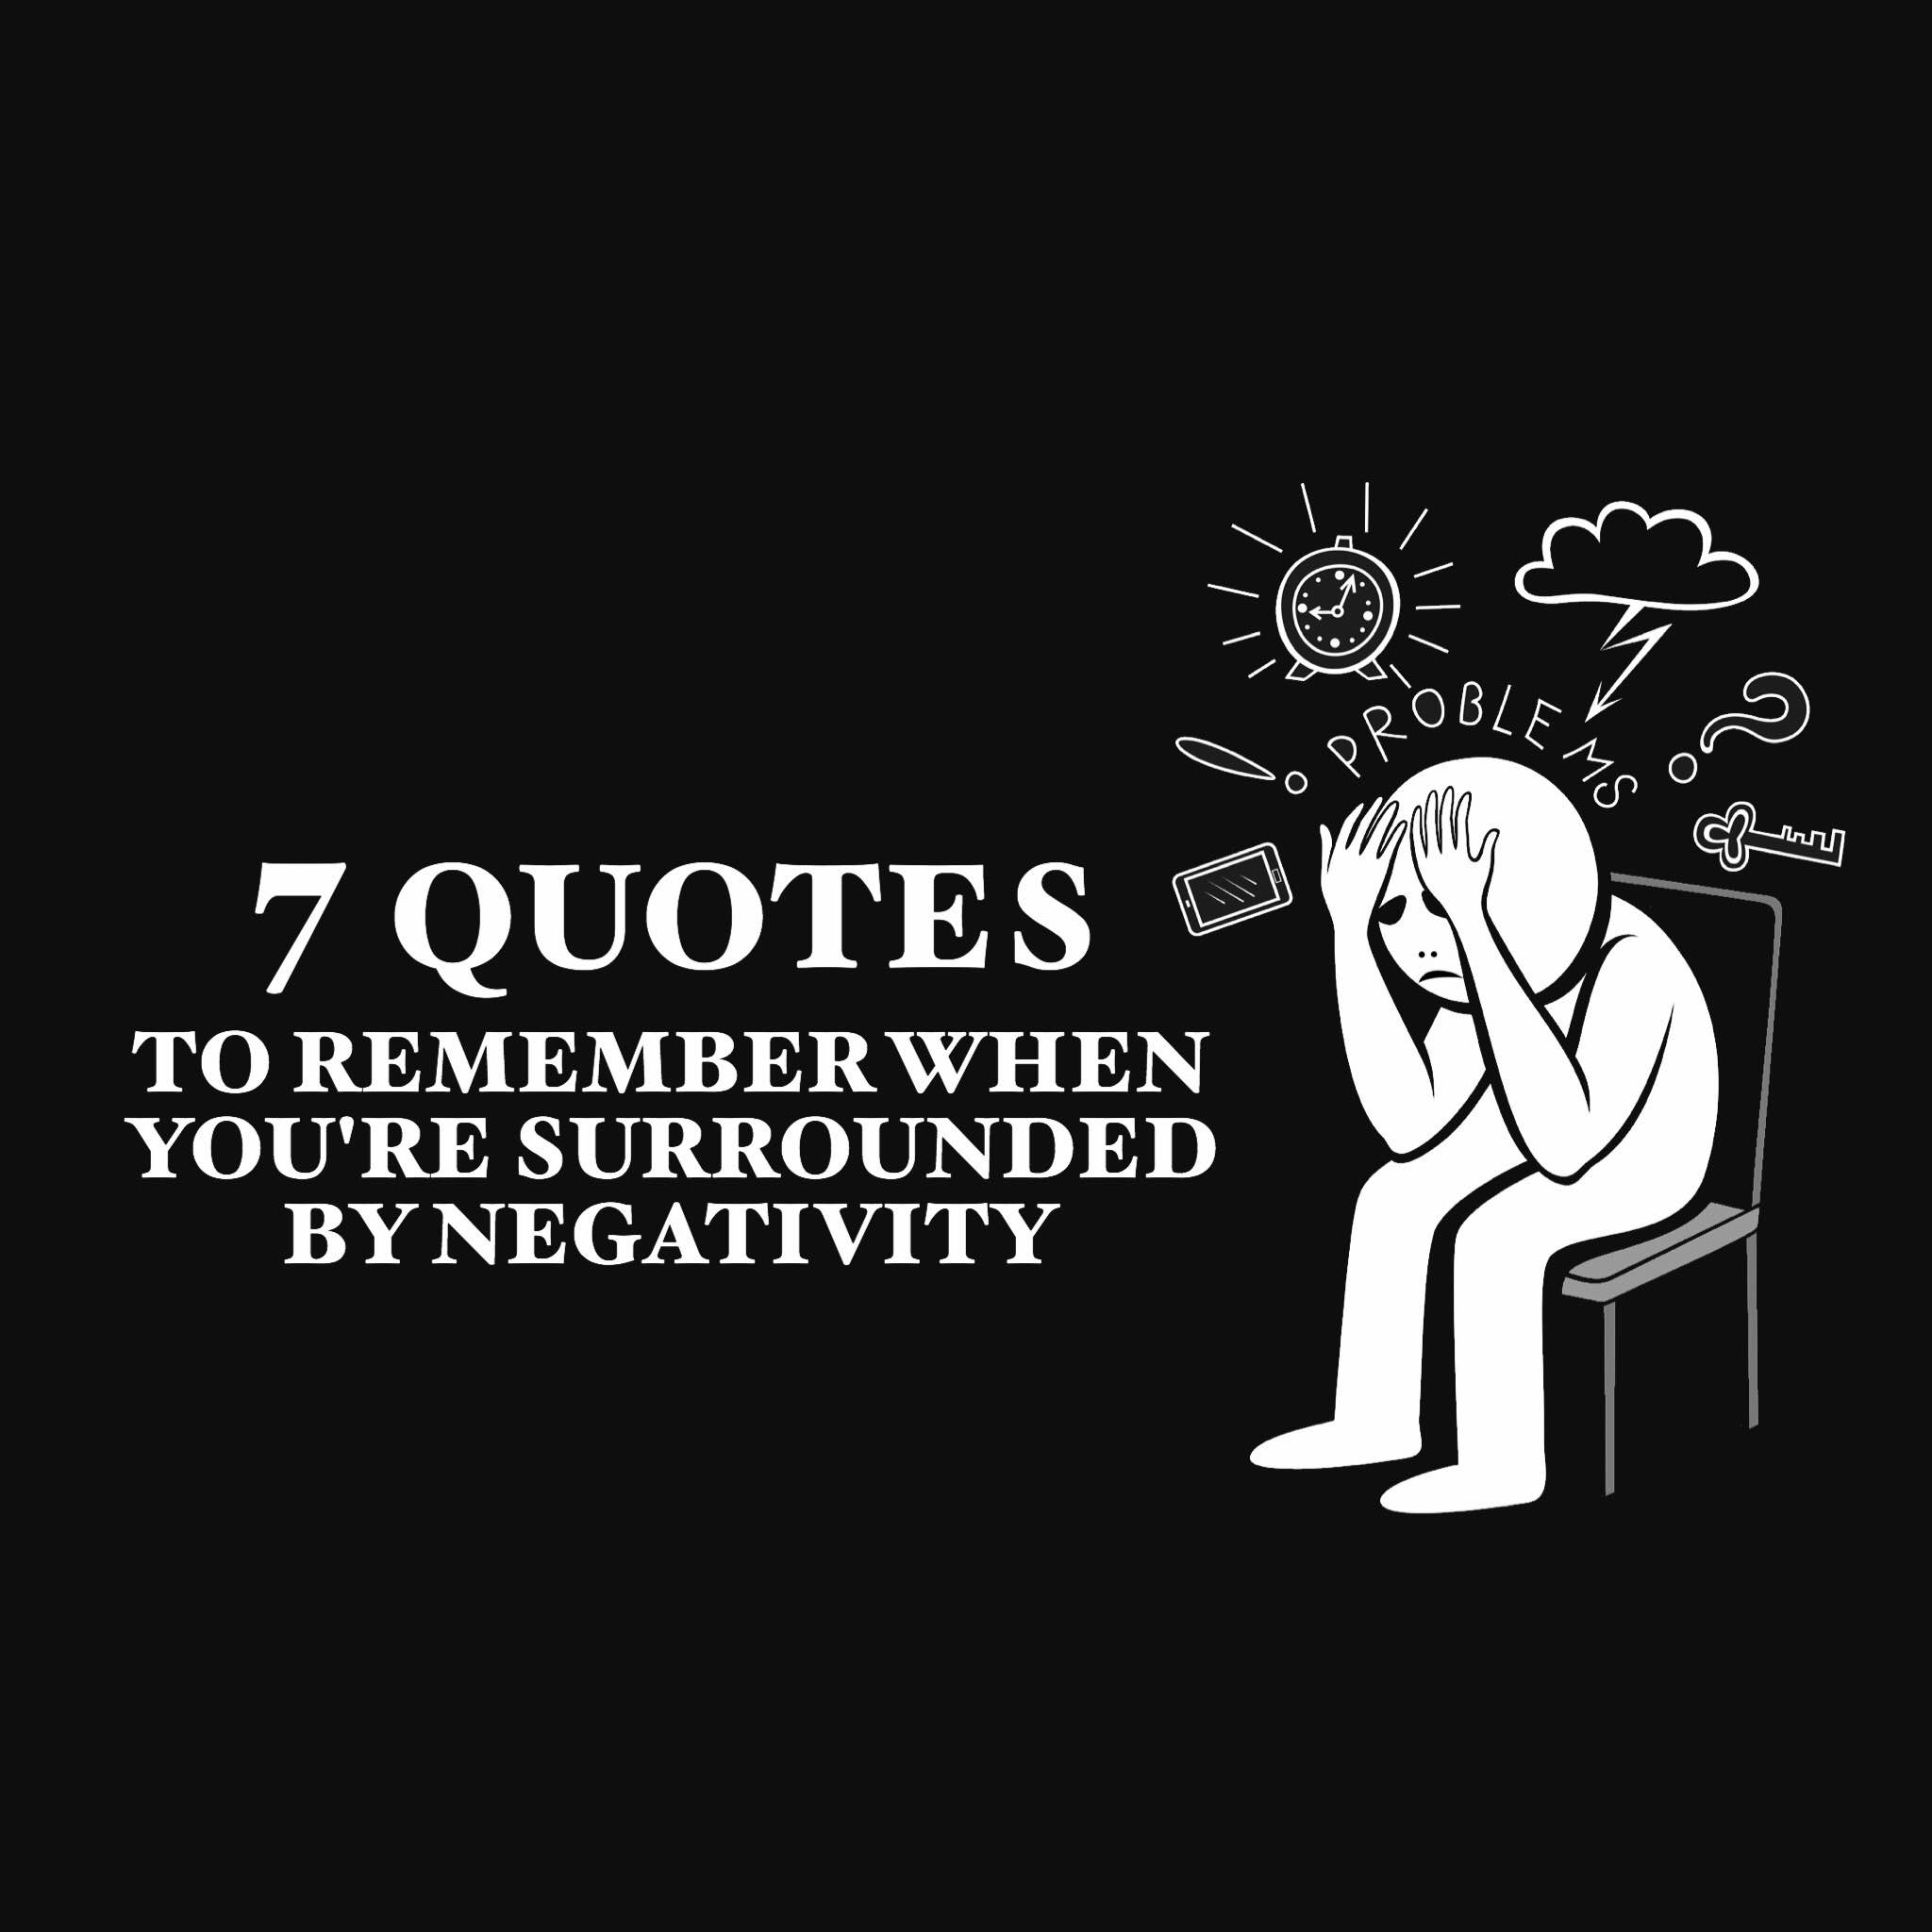 Negativity Quotes 7 Quotes for Negativity: How to Fight Negativity Negativity Quotes